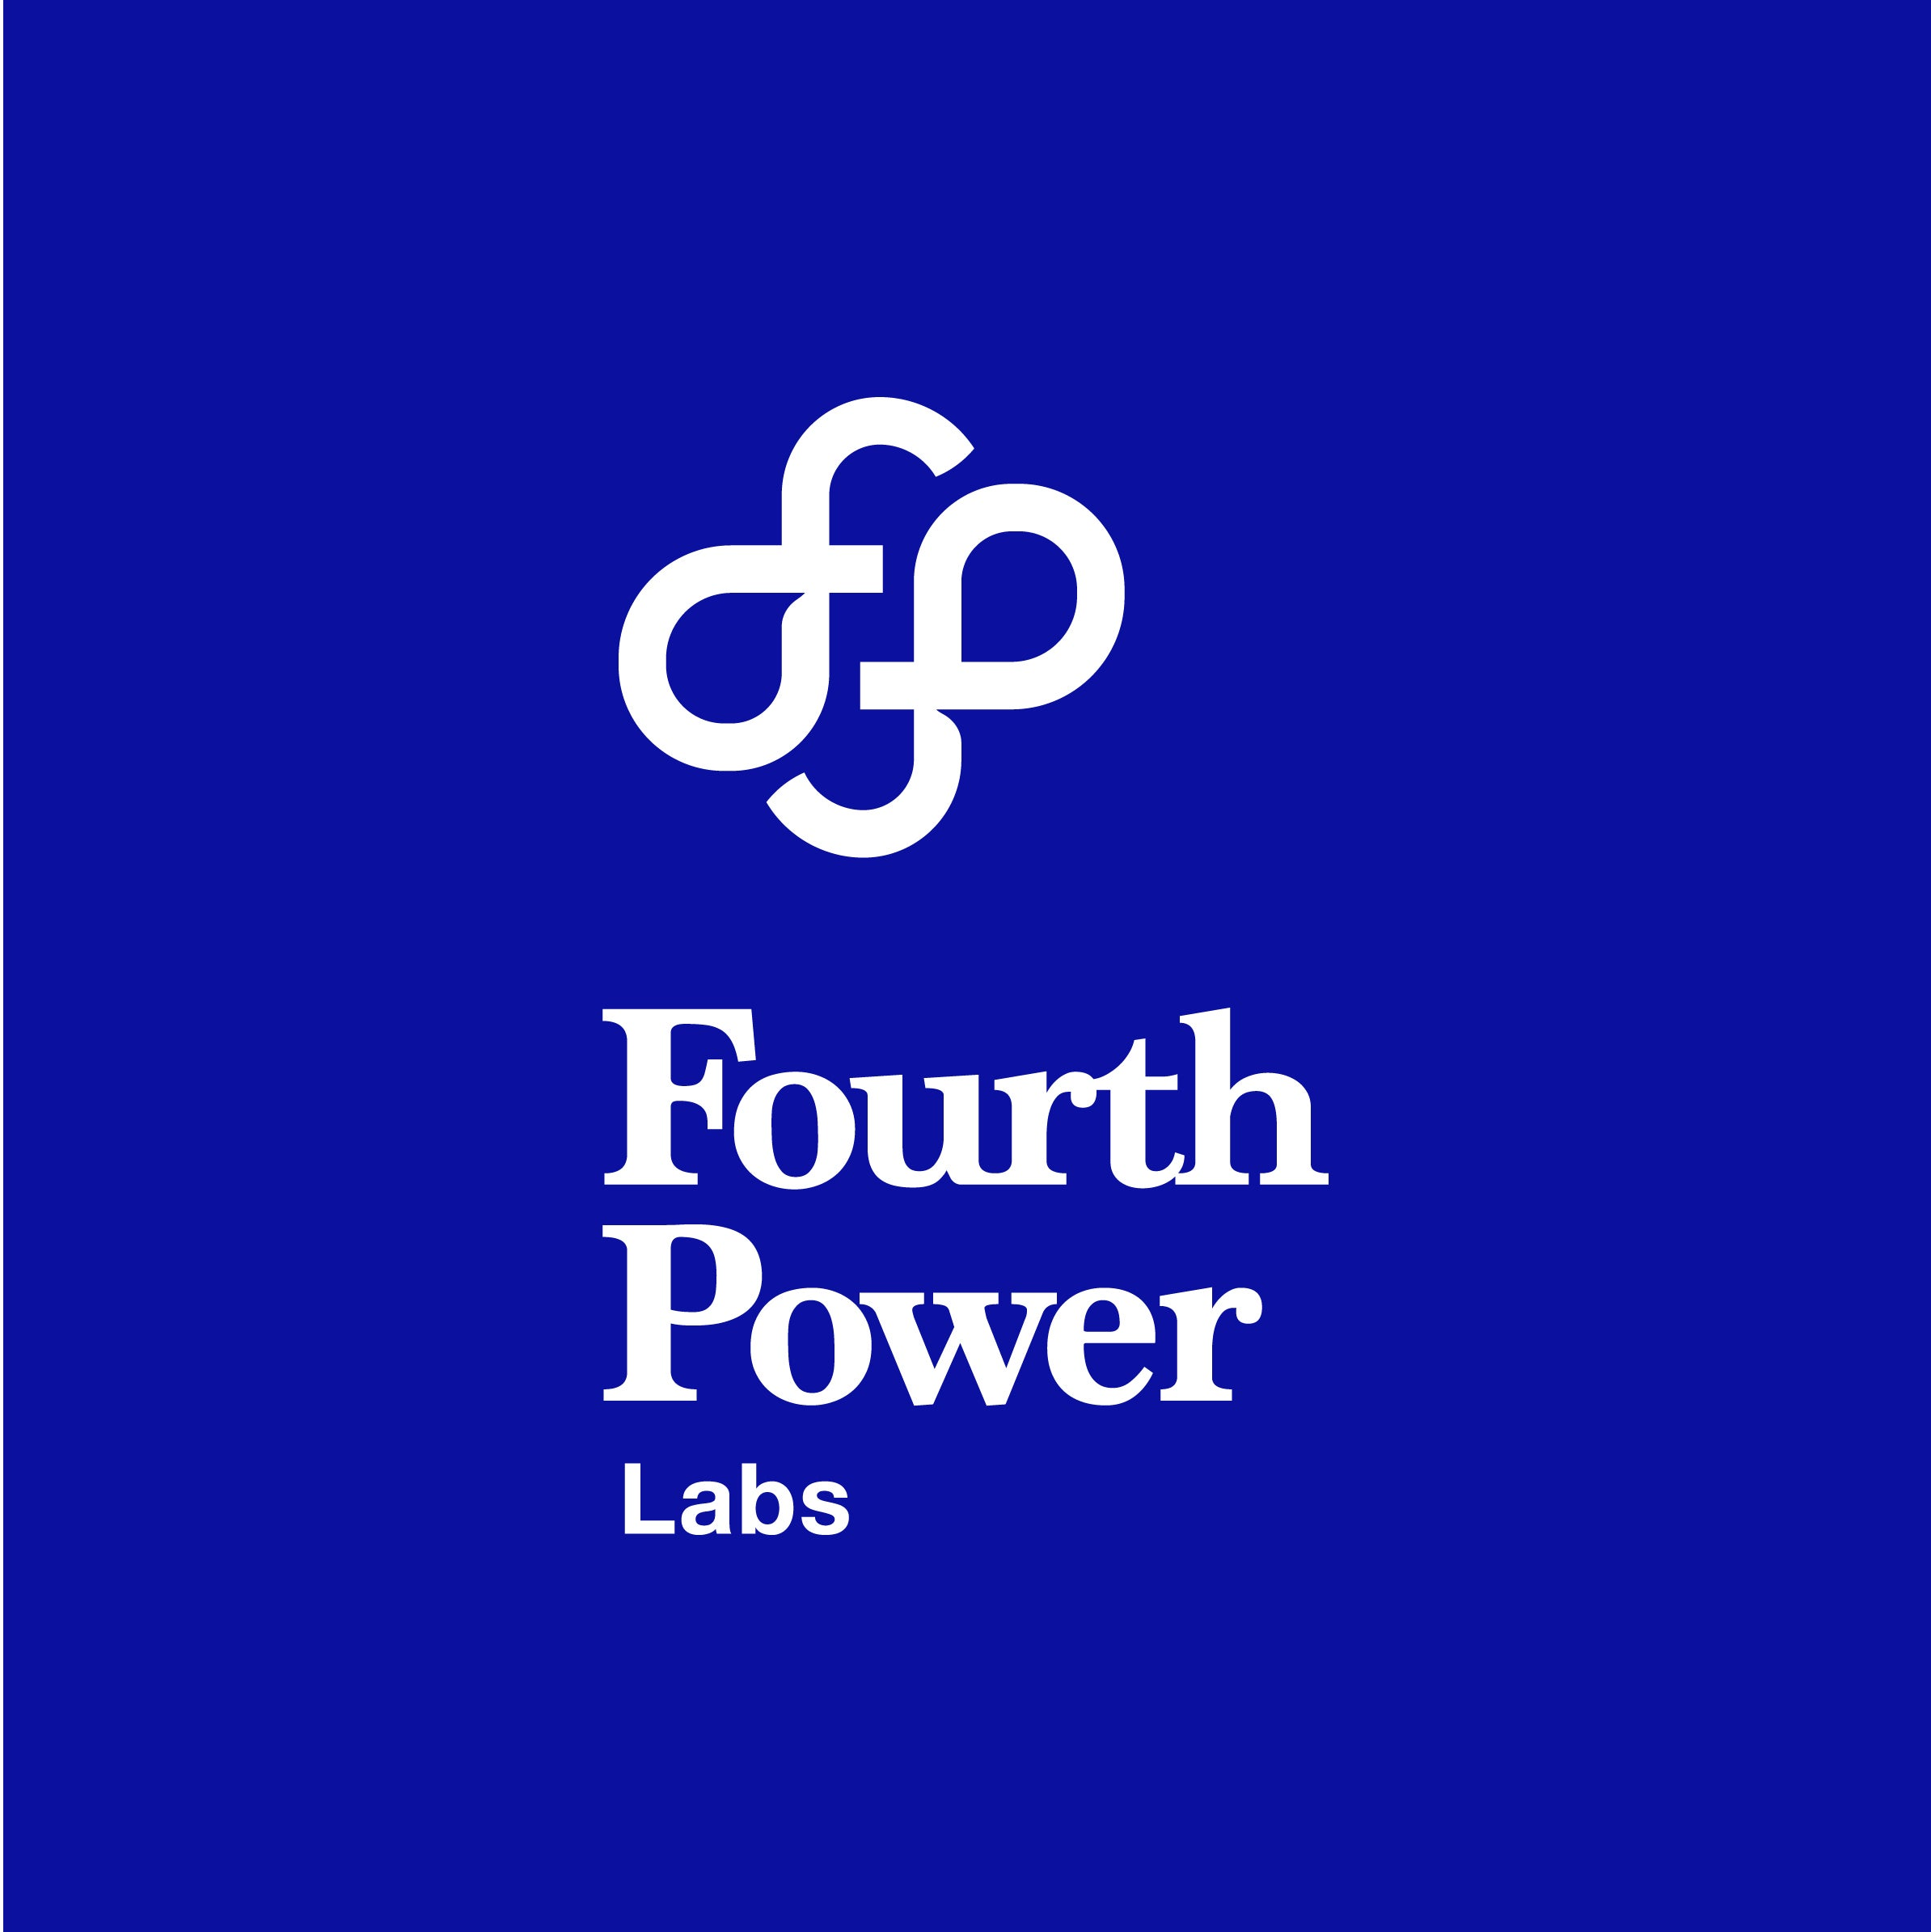 Letco & Fourth Power Labs Partner to Bring Hemp-Derived CBD Products to Compounding Pharmacies